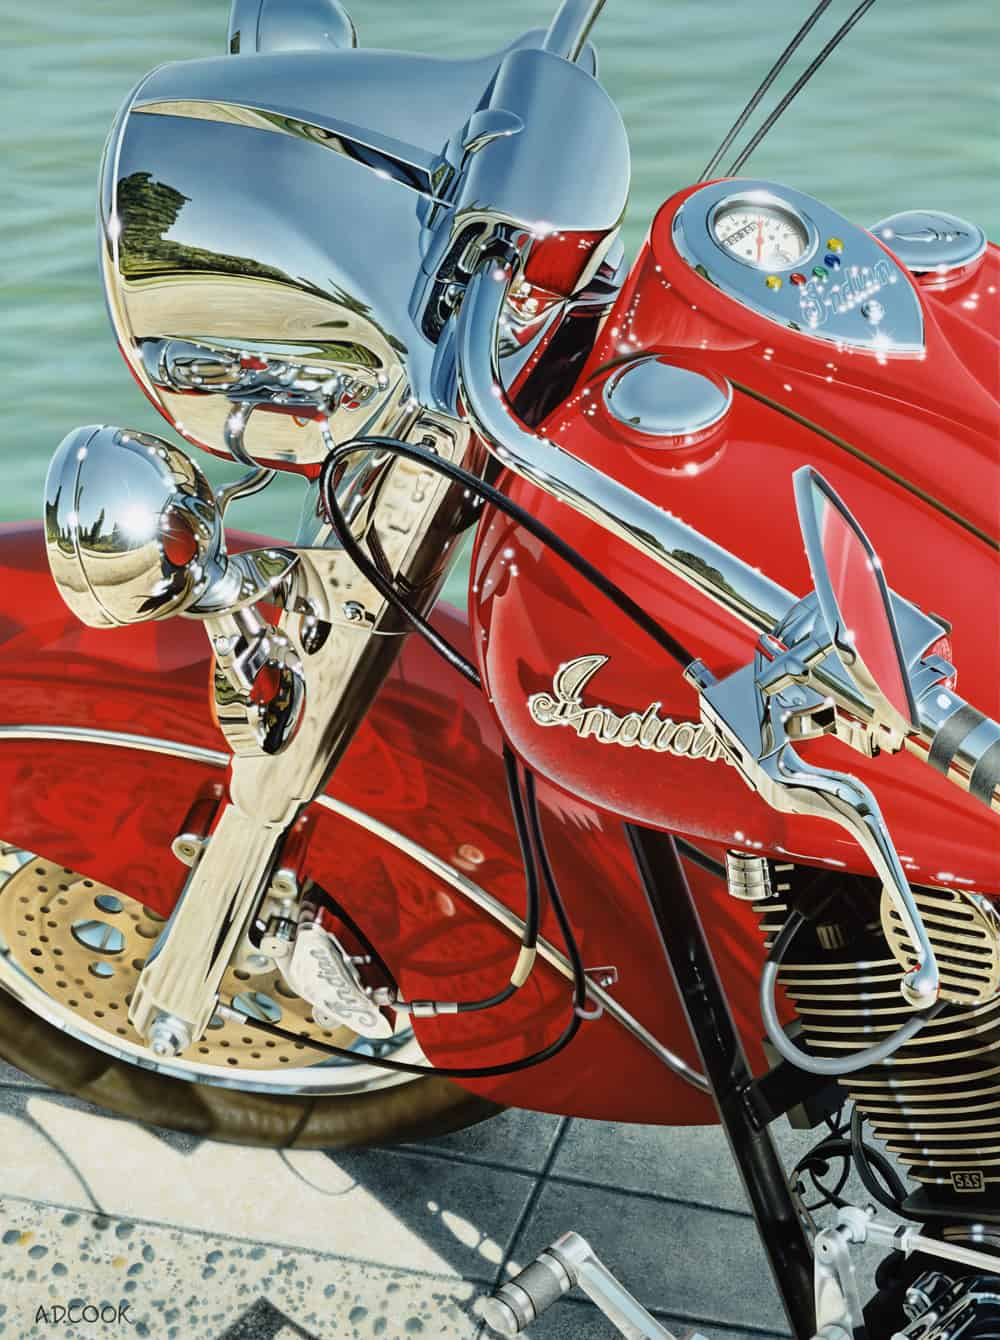 INDIAN SUMMER motorcycle painting by A.D. Cook, 2000